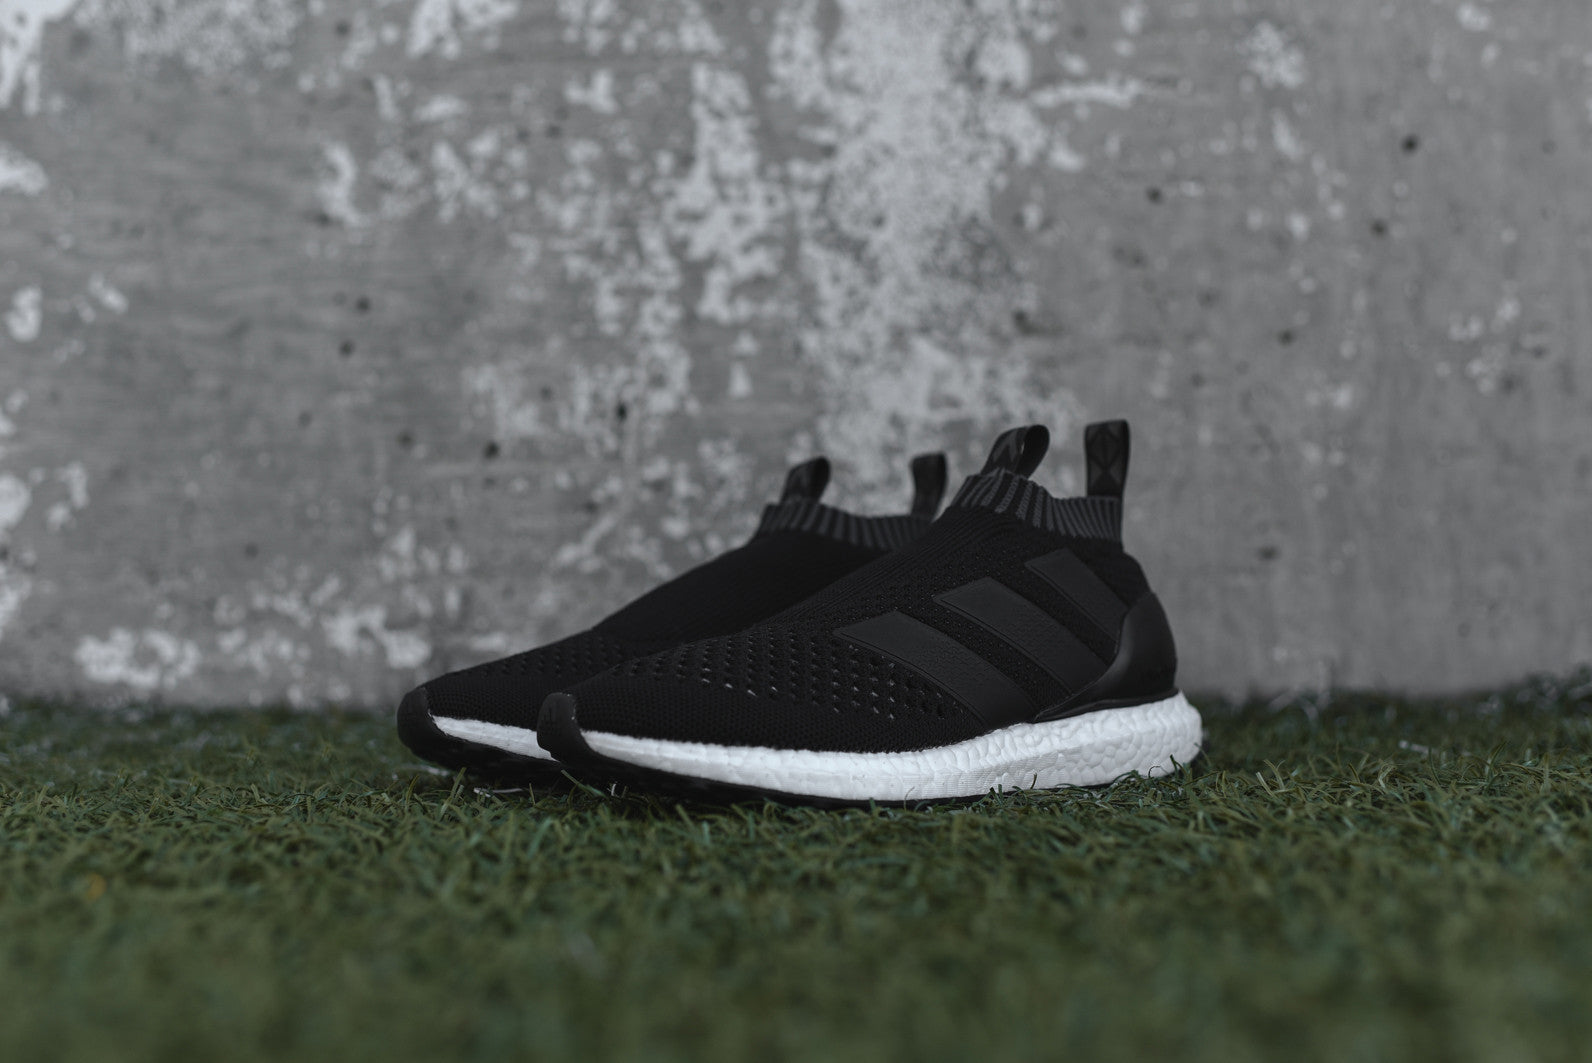 sale retailer fa4ca fd8c8 L4Thoughts on the adidas ACE 16+ PureControl Ultra Boost